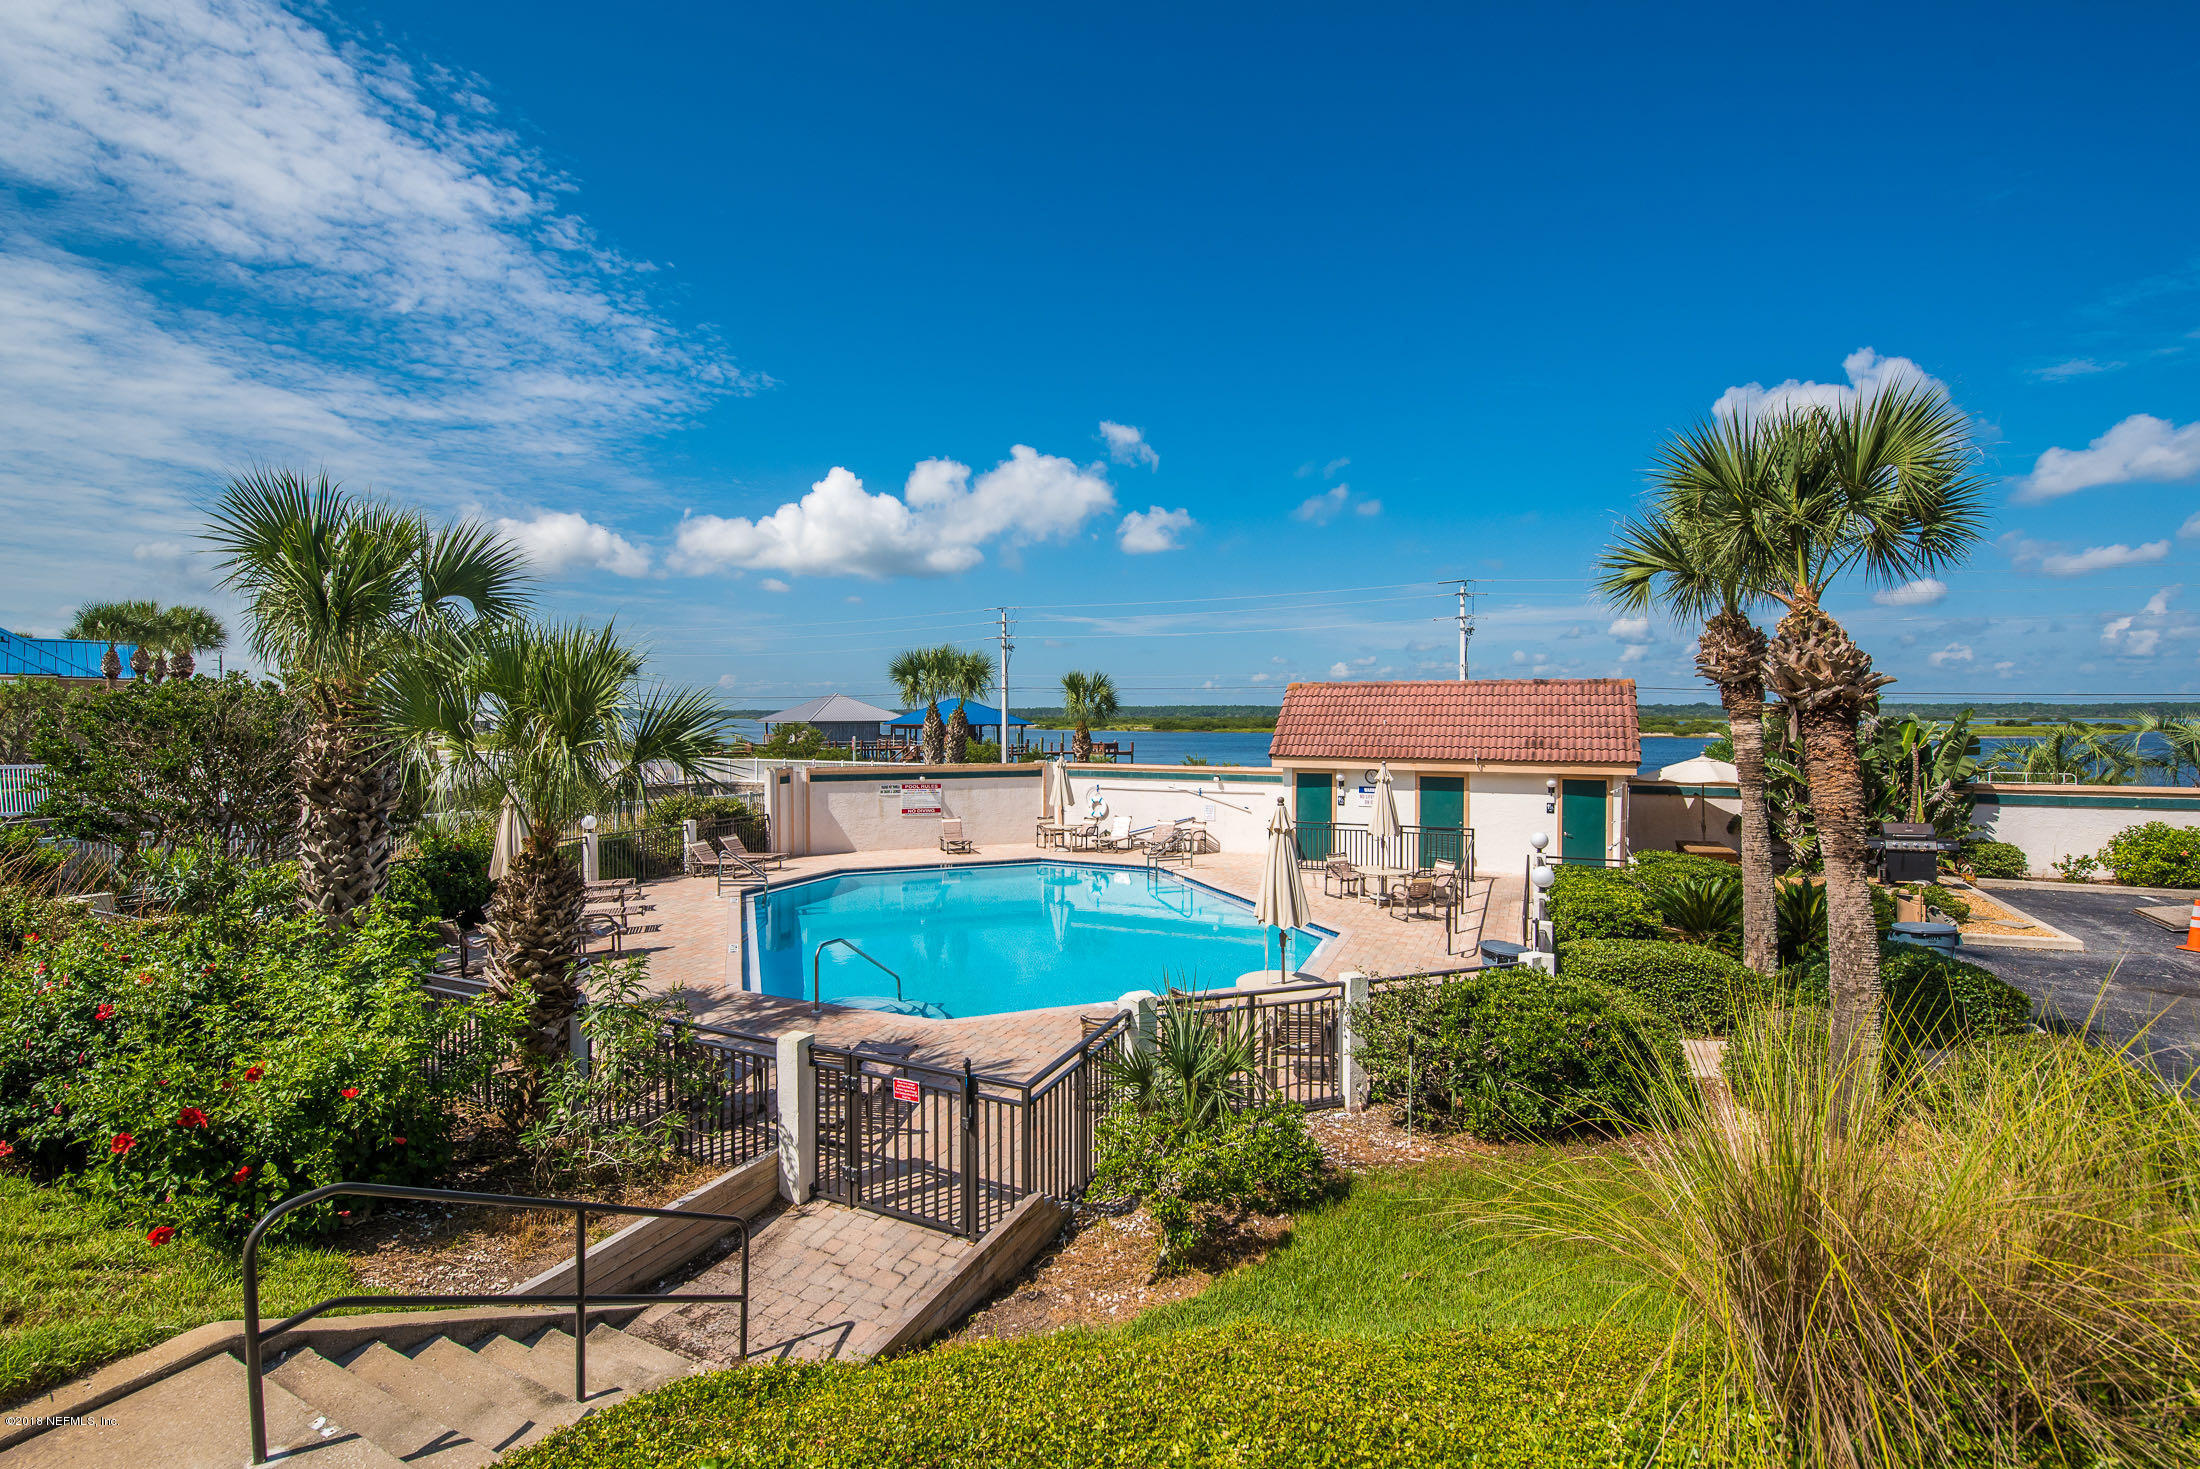 7780 A1A, ST AUGUSTINE, FLORIDA 32080, 3 Bedrooms Bedrooms, ,2 BathroomsBathrooms,Residential - condos/townhomes,For sale,A1A,952819